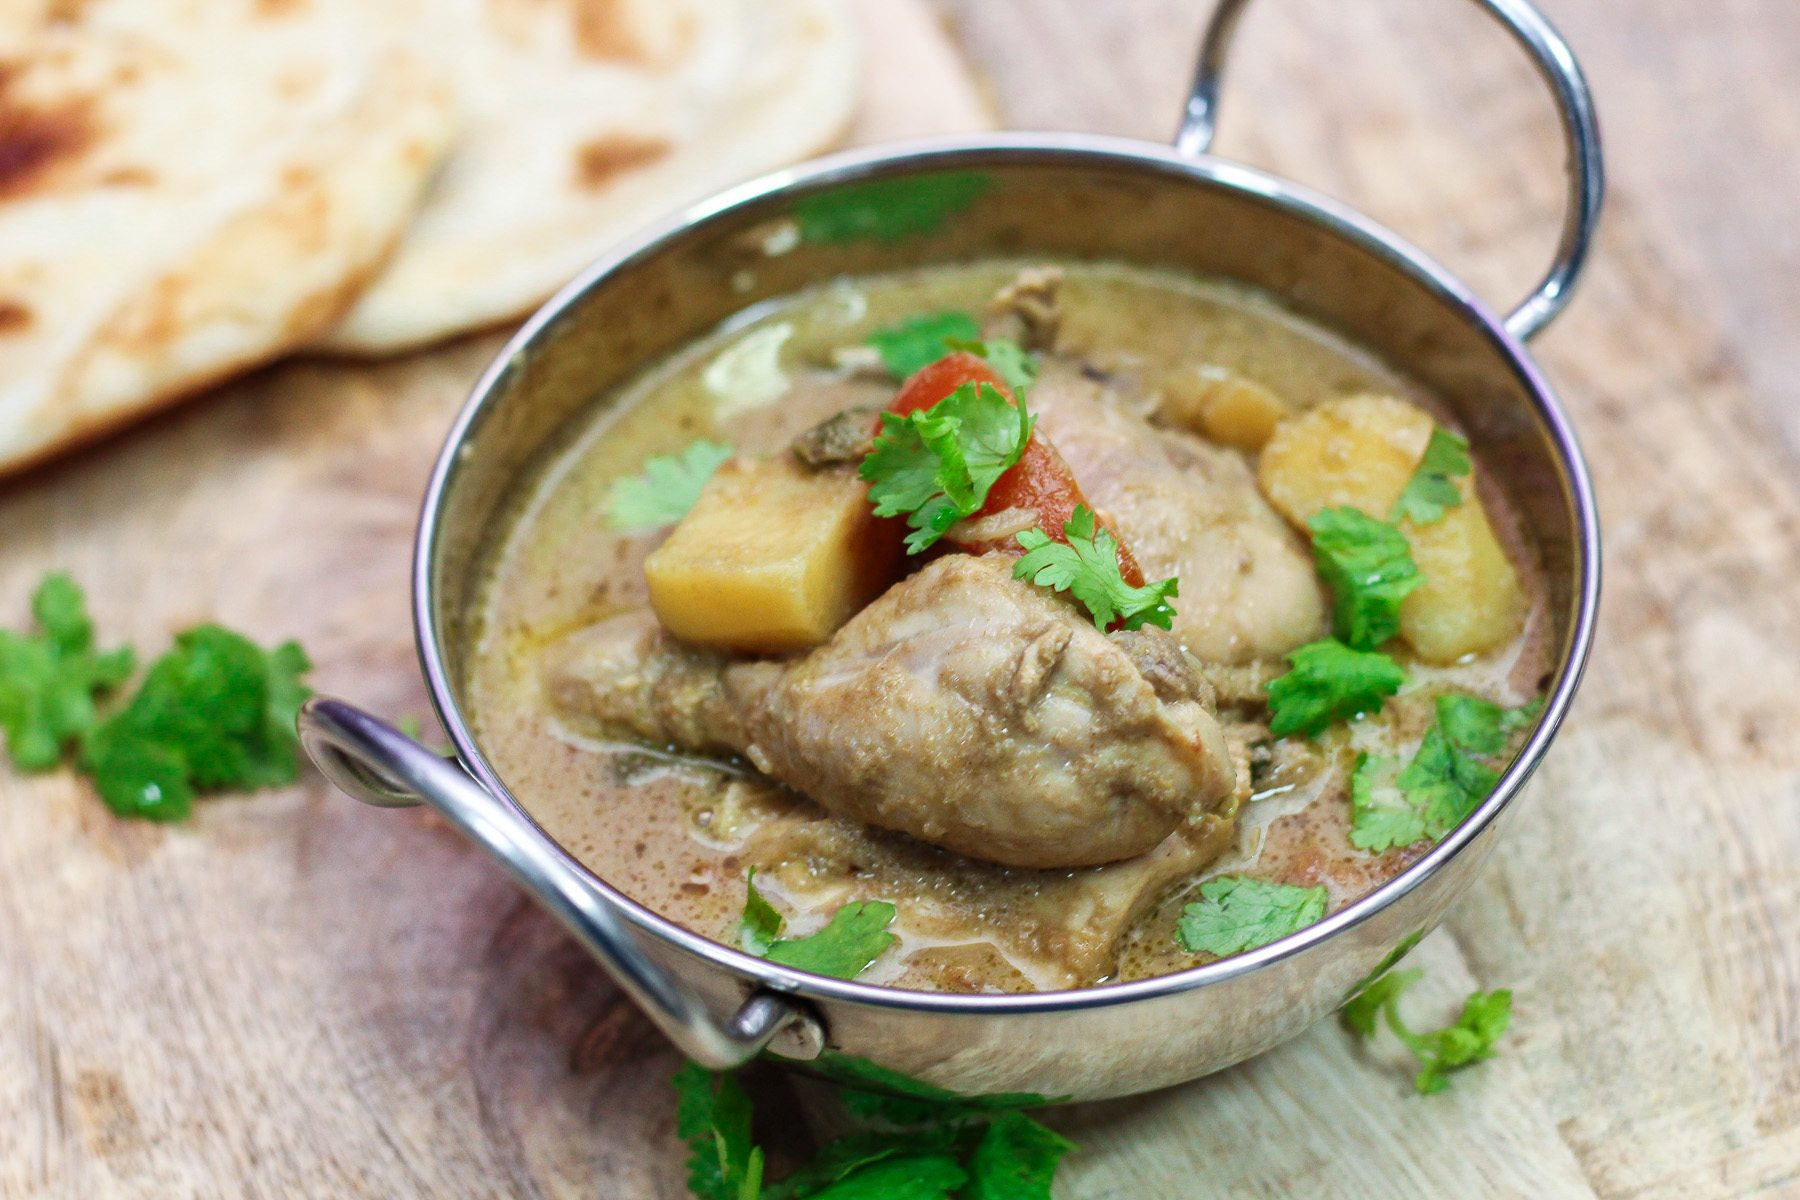 Chicken korma recipe maya kitchenette chicken korma recipe this recipe can also be used for lamb or beef best of all you can prepare this in a slow cooker and while you are at it forumfinder Gallery